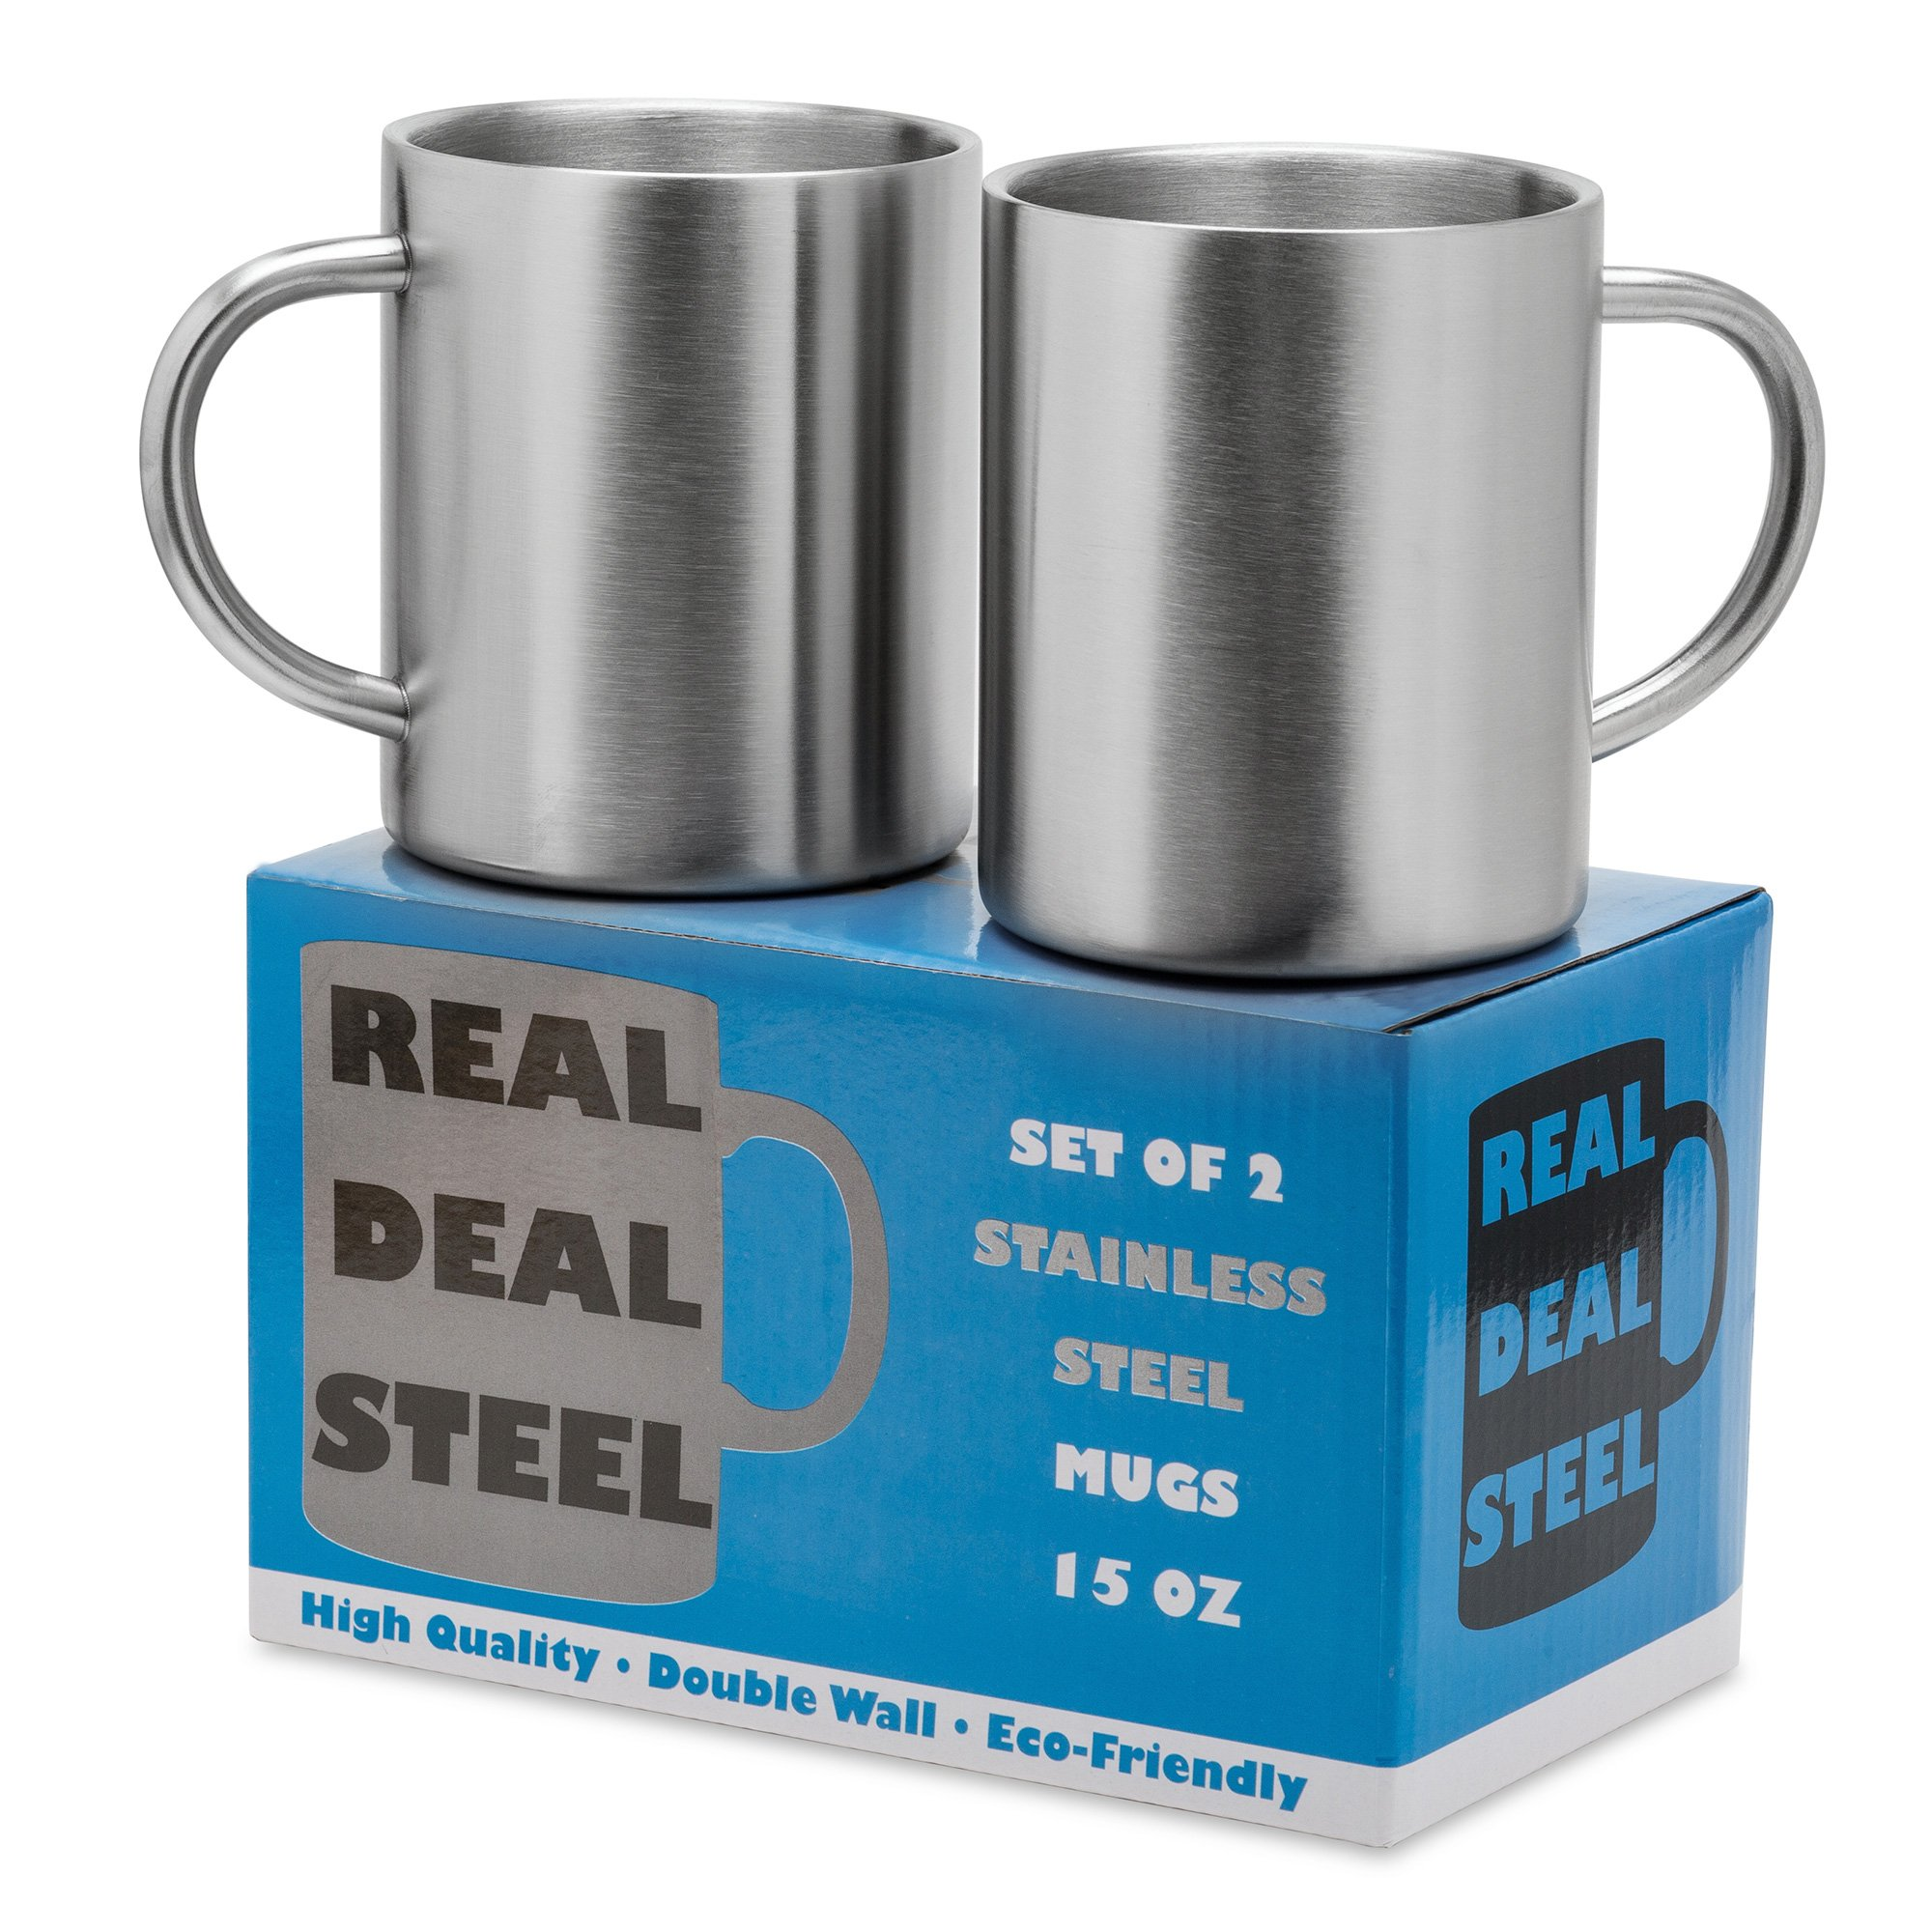 Stainless Steel Double Walled Mugs: 100% BPA Free,15 oz Metal Coffee & Tea Cup Mug - Insulated Cups with Handles Keep Drinks Hot or Cold Longer - Durable & Rust Proof - Set of 2 Shatter Proof Mugs